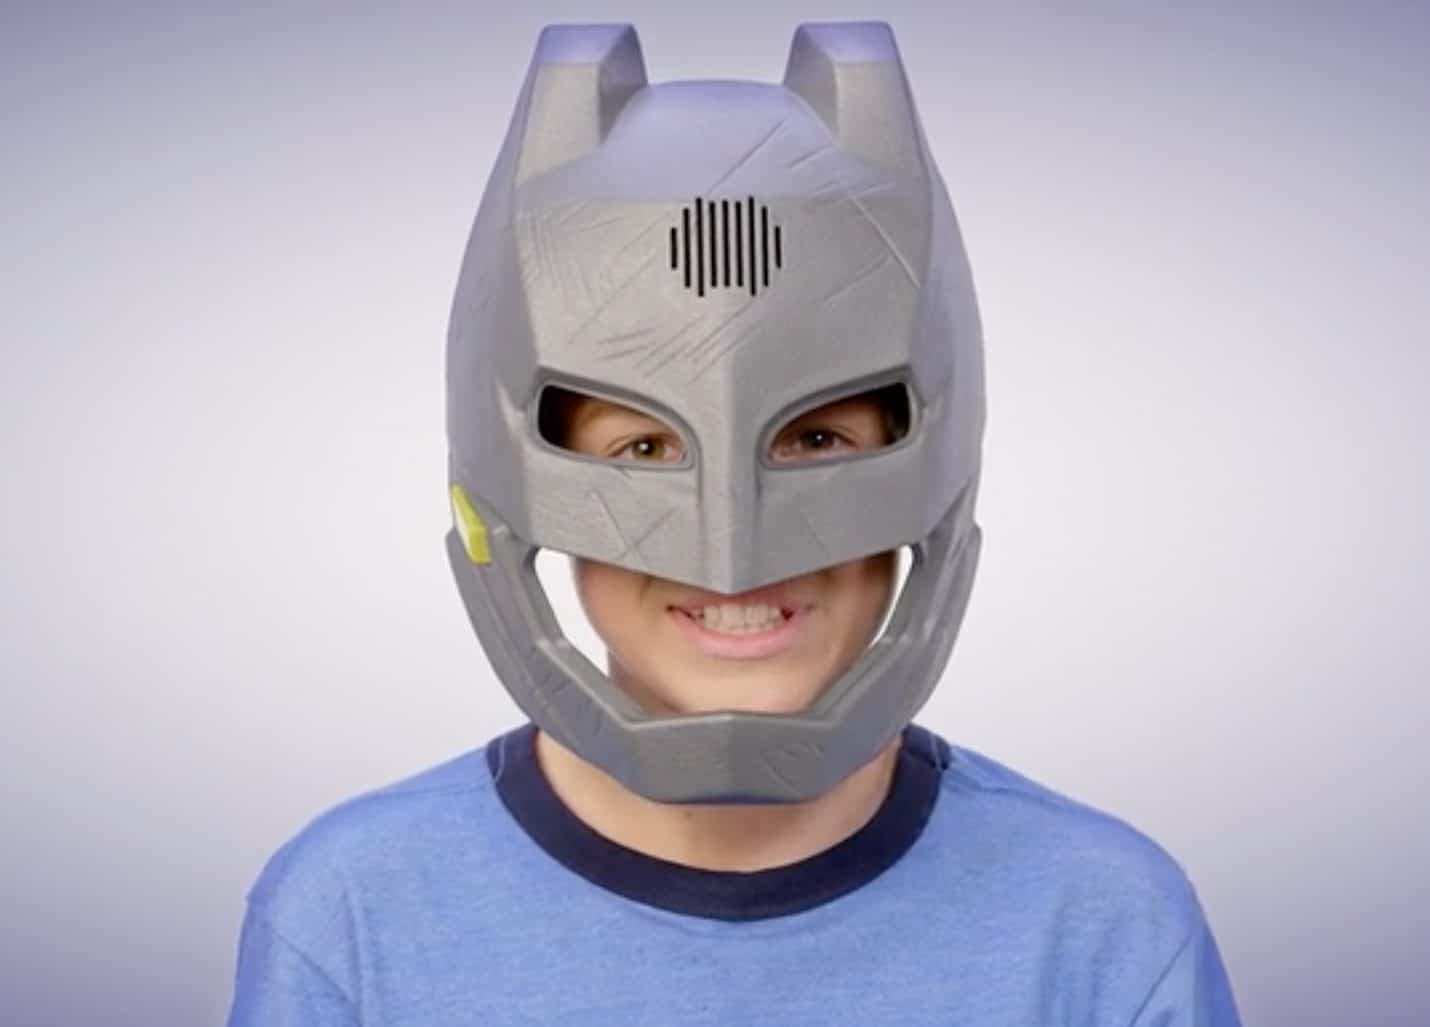 Batman Voice Changer Mask